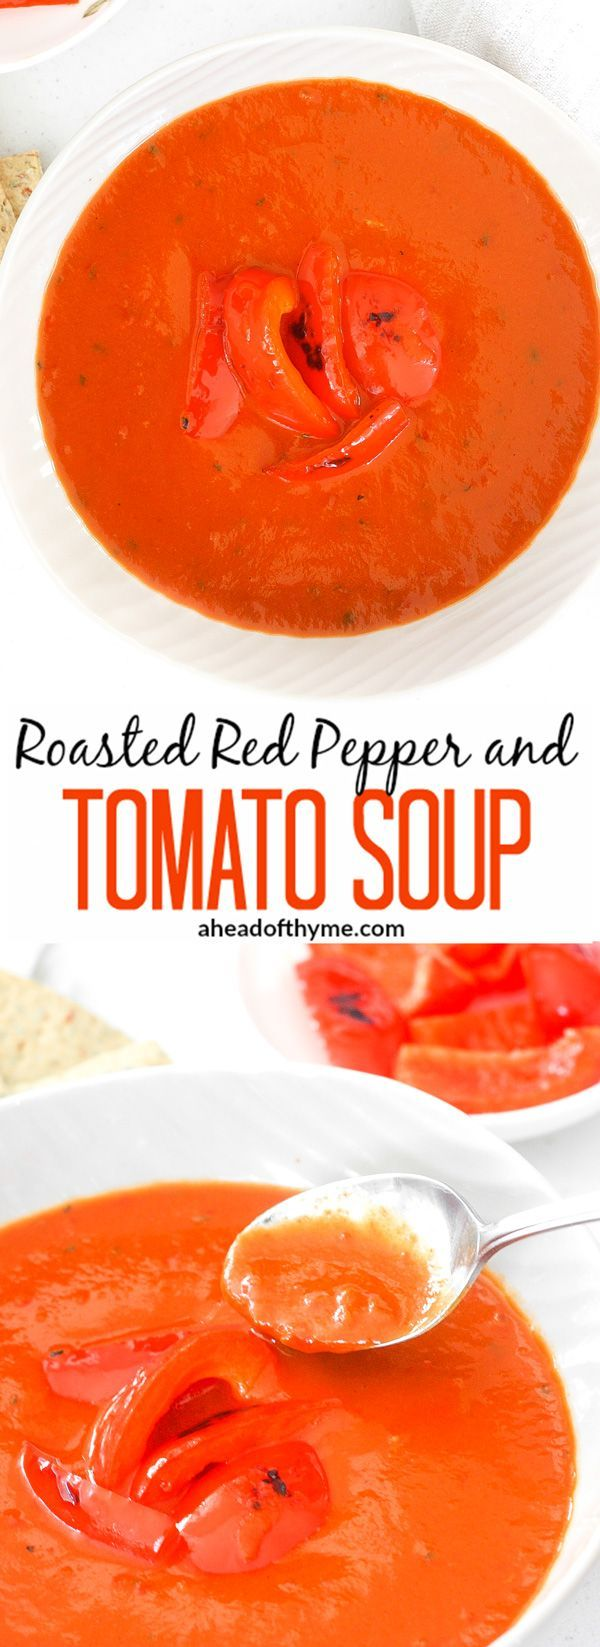 Roasted Red Pepper and Tomato Soup: It's easy to make gourmet soups at home…